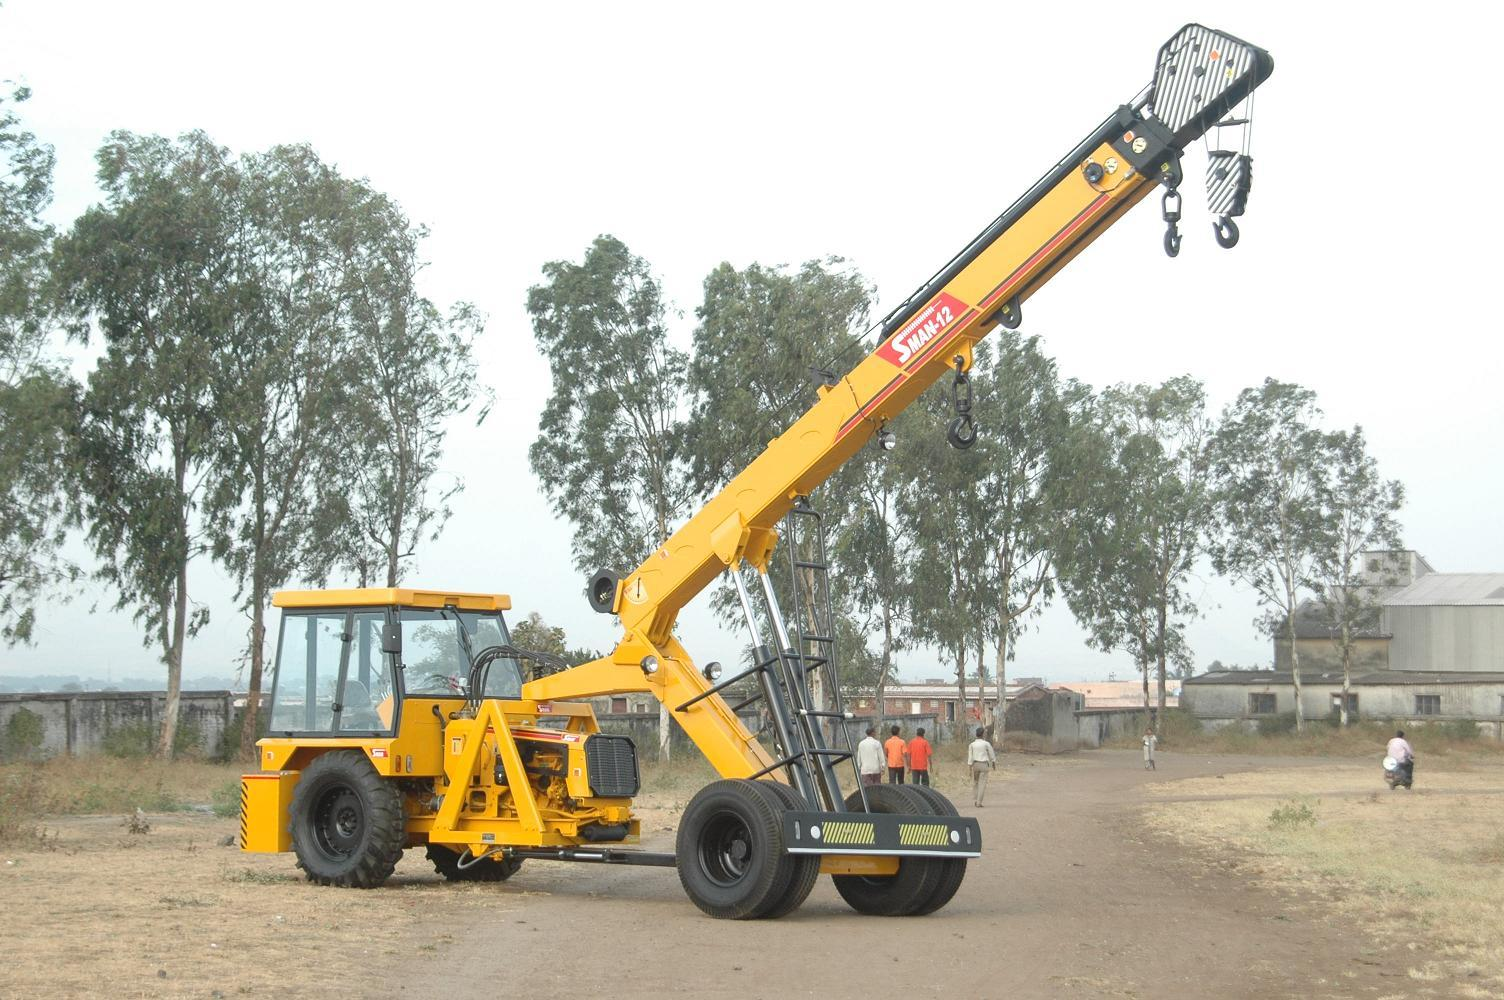 Need of crane services abc infra equipment pvt ltd for The crain